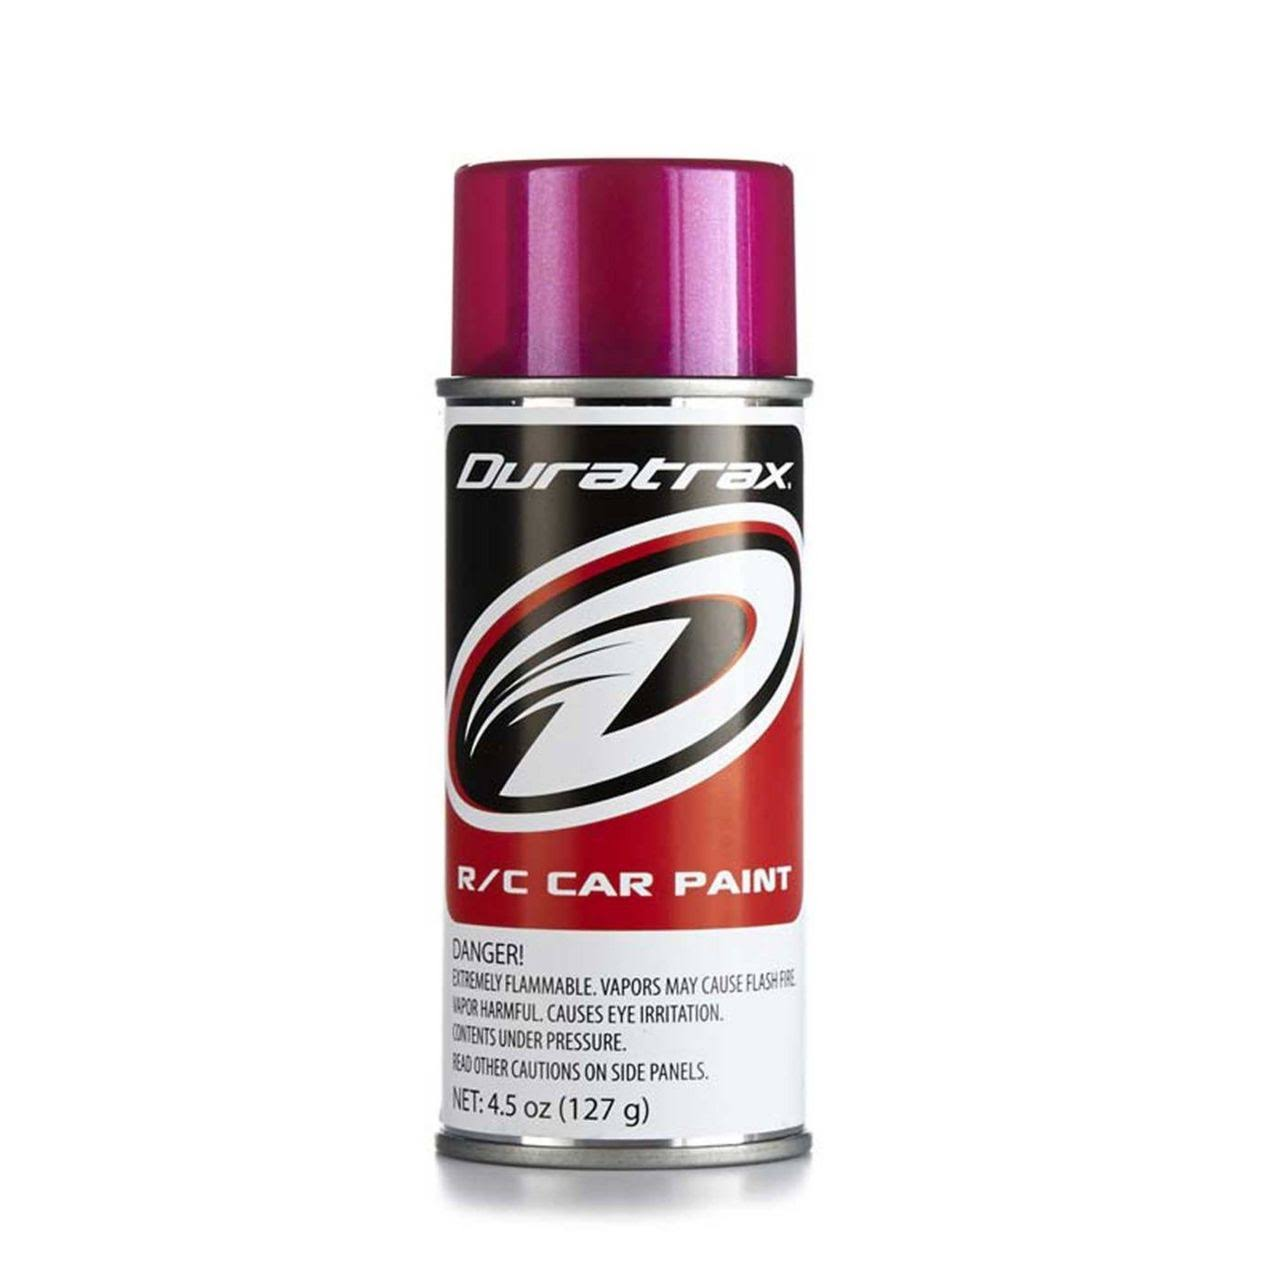 Duratrax Polycarbonate Radio Control Vehicle Body Spray Paint - 4.5oz, Metallic Burgundy